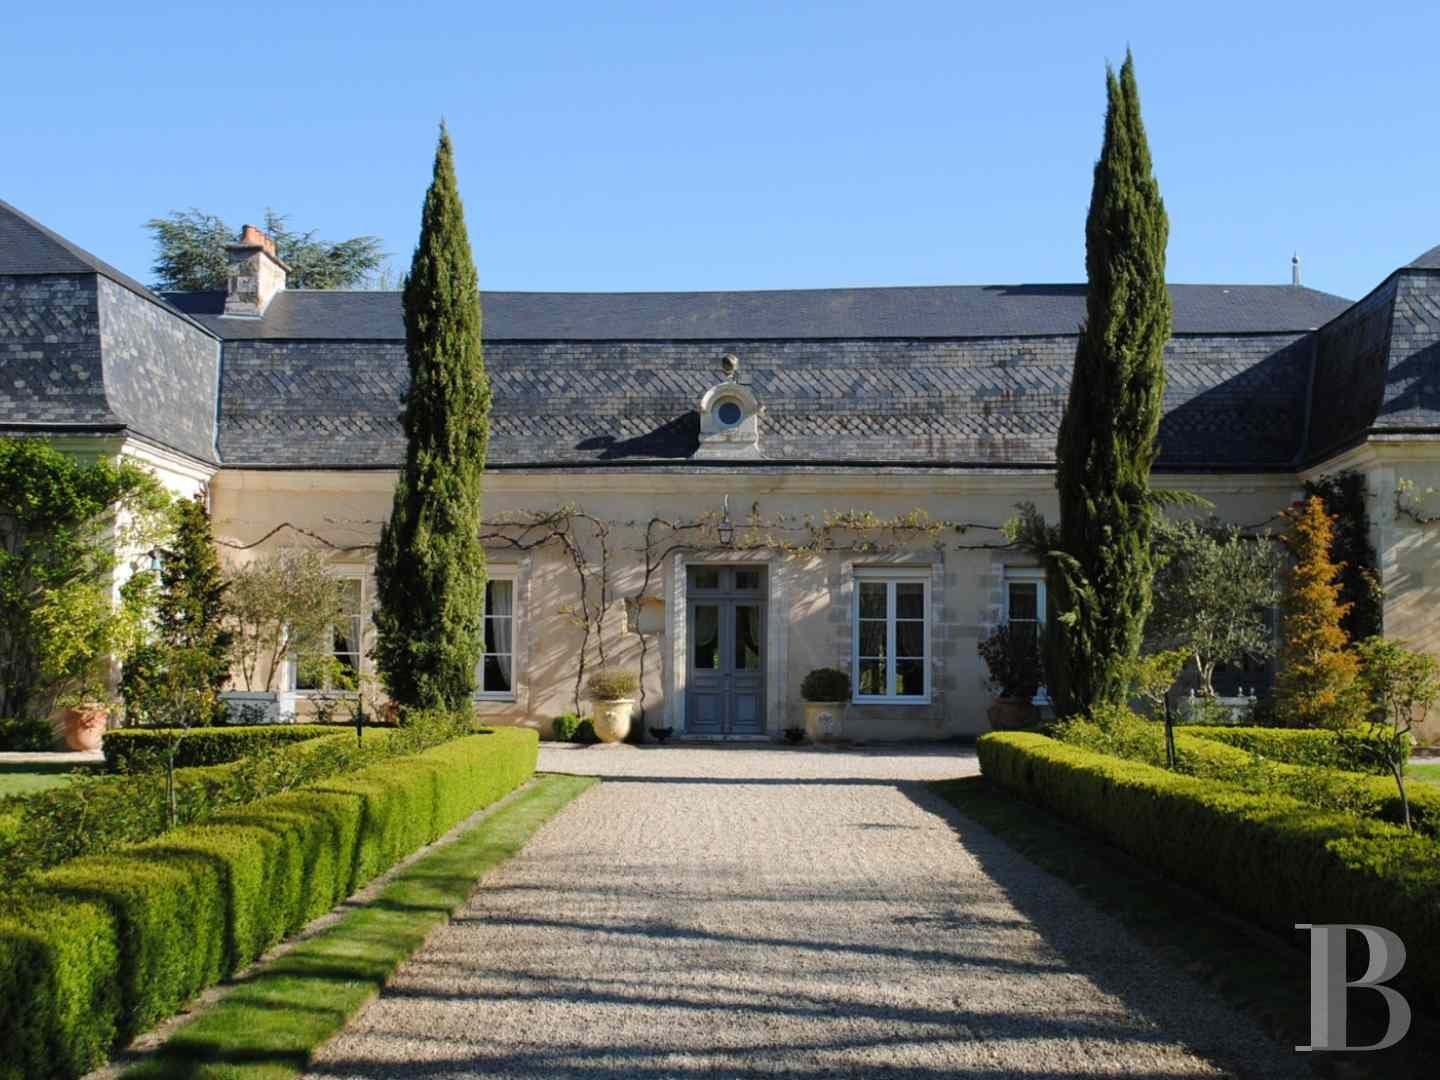 A 17th & 19th century manor house and its superb garden with almost 20 ha of land in a wood on the edge of Poitiers - chateaux for sale France - in South-West, Perigord, Dordogne, Quercy, Limousin - Patrice Besse Castles and Mansions of France is a Paris based real-estate agency specialised in the sale of Castles / chateaux.